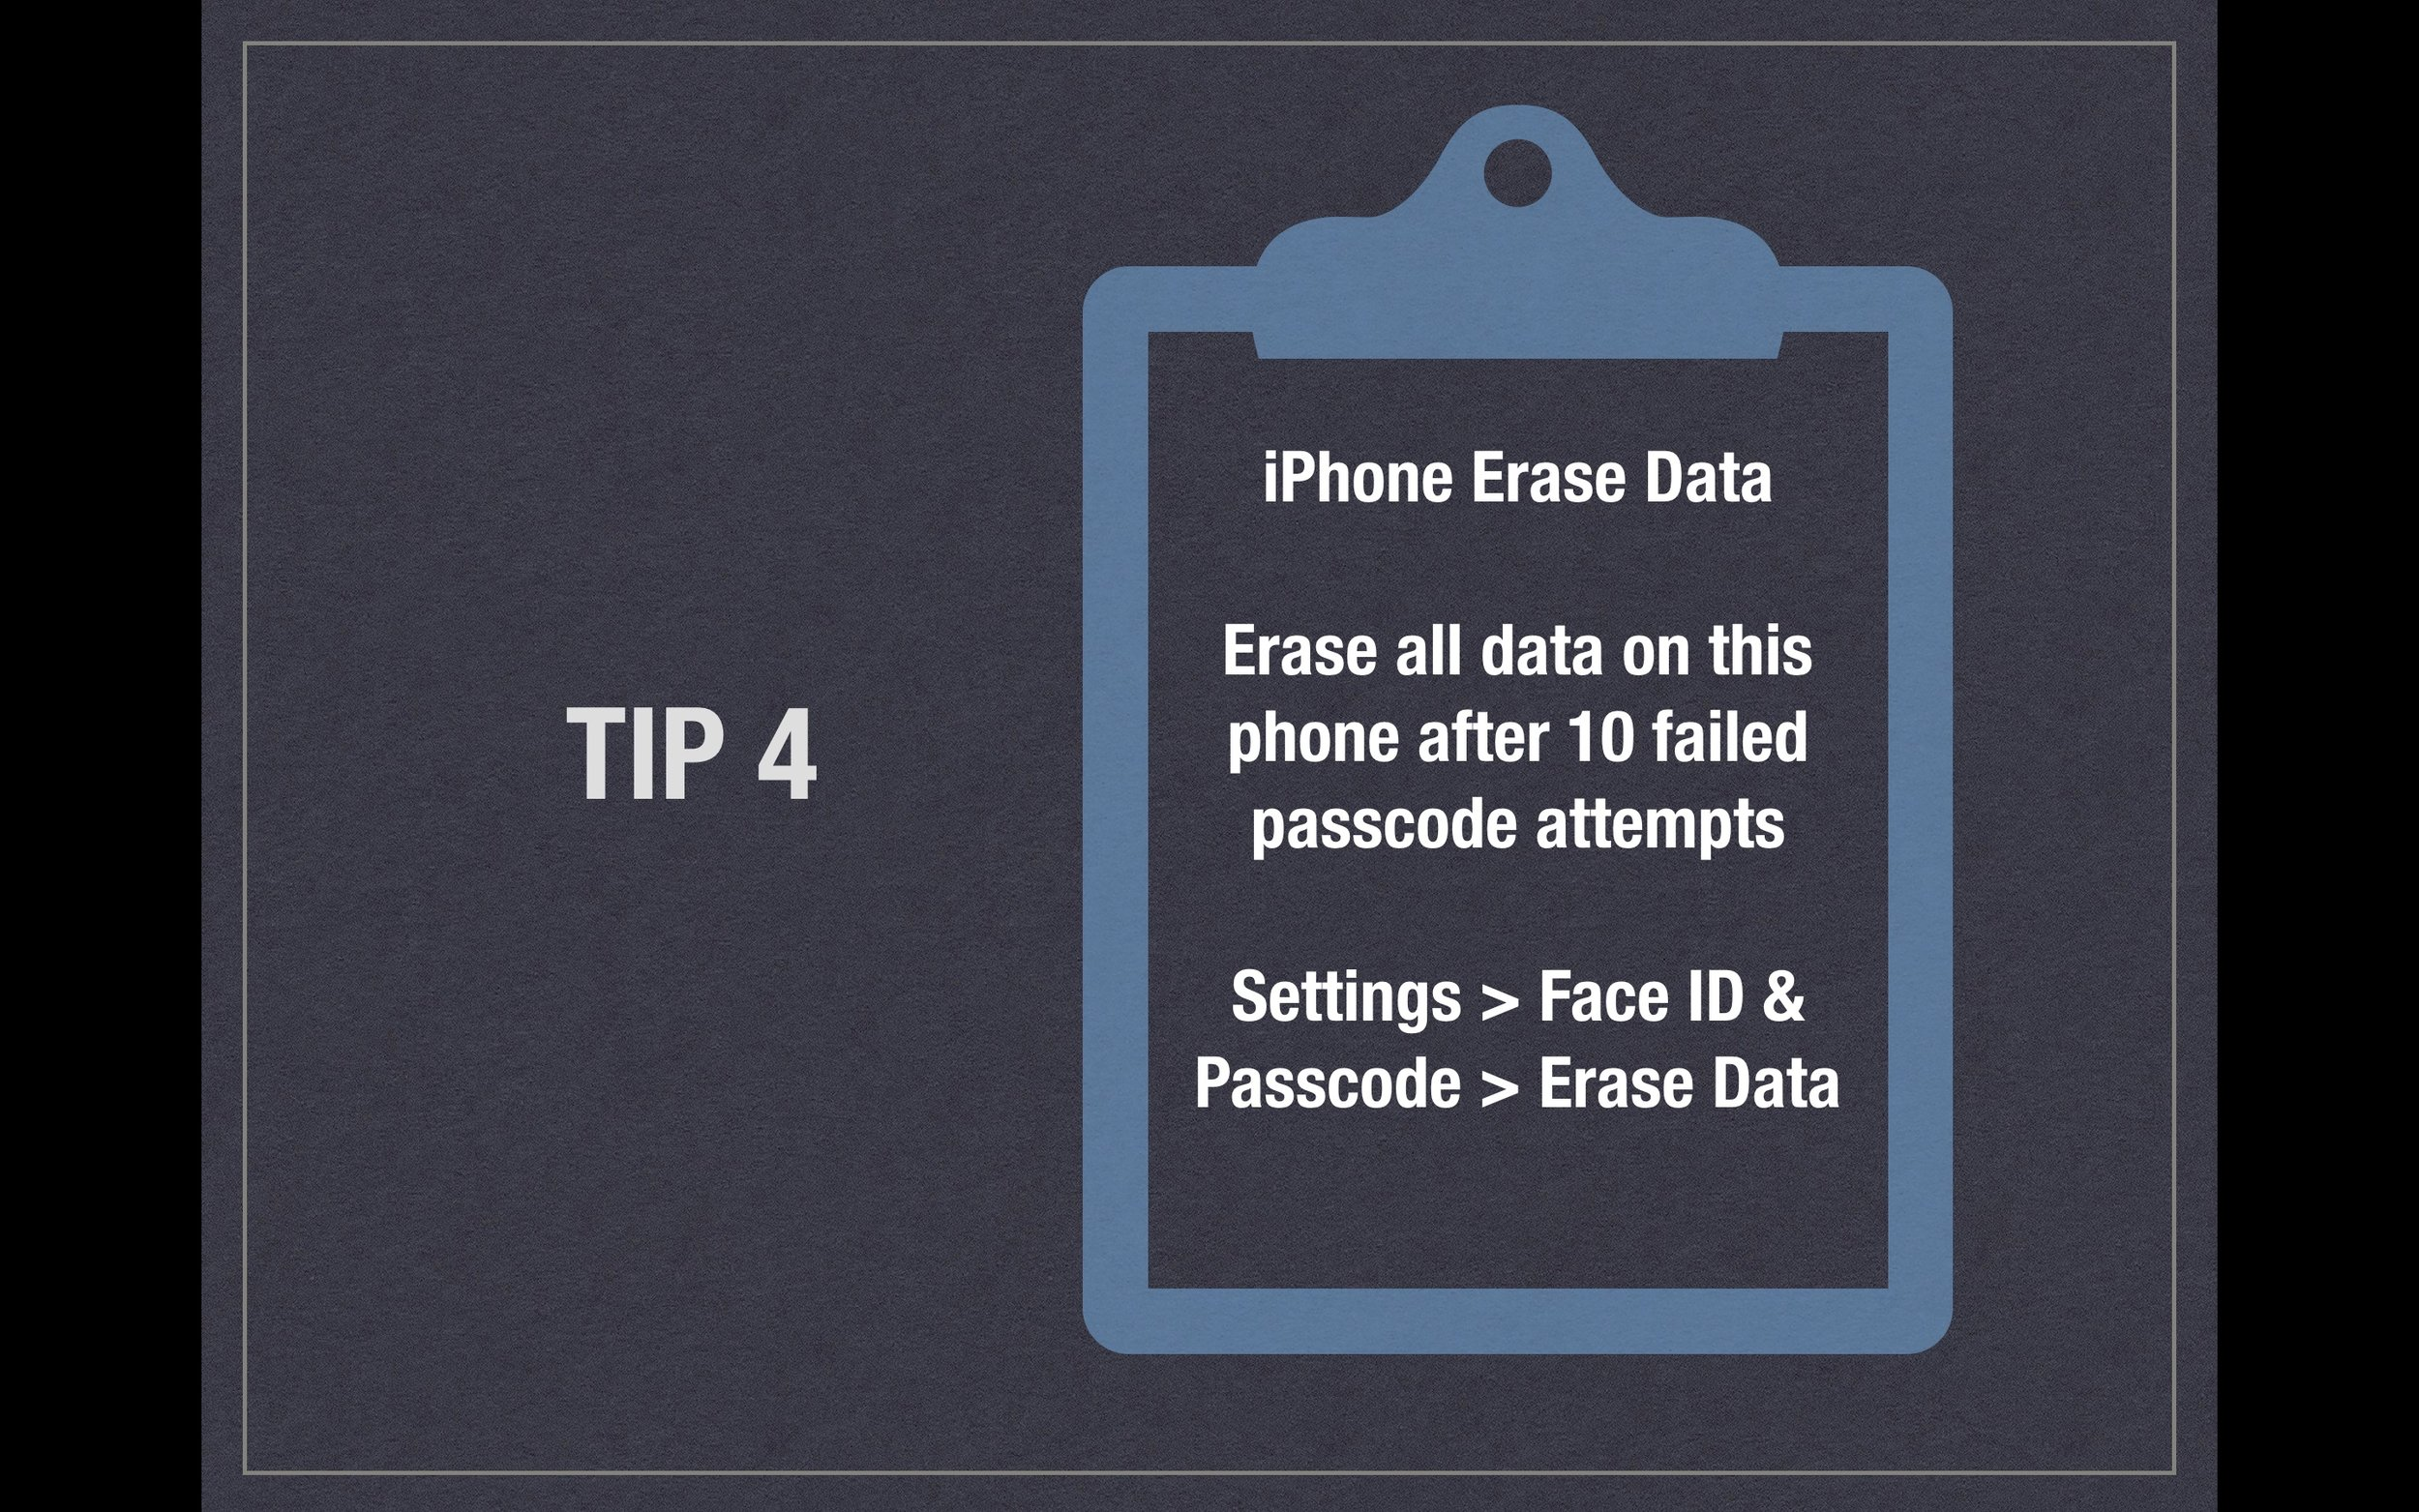 Tip 4 - iPhone Erase Data - Erase all data on this phone after 10 failed passcode attempts. Setting> Face ID & Passcode > Erase Data